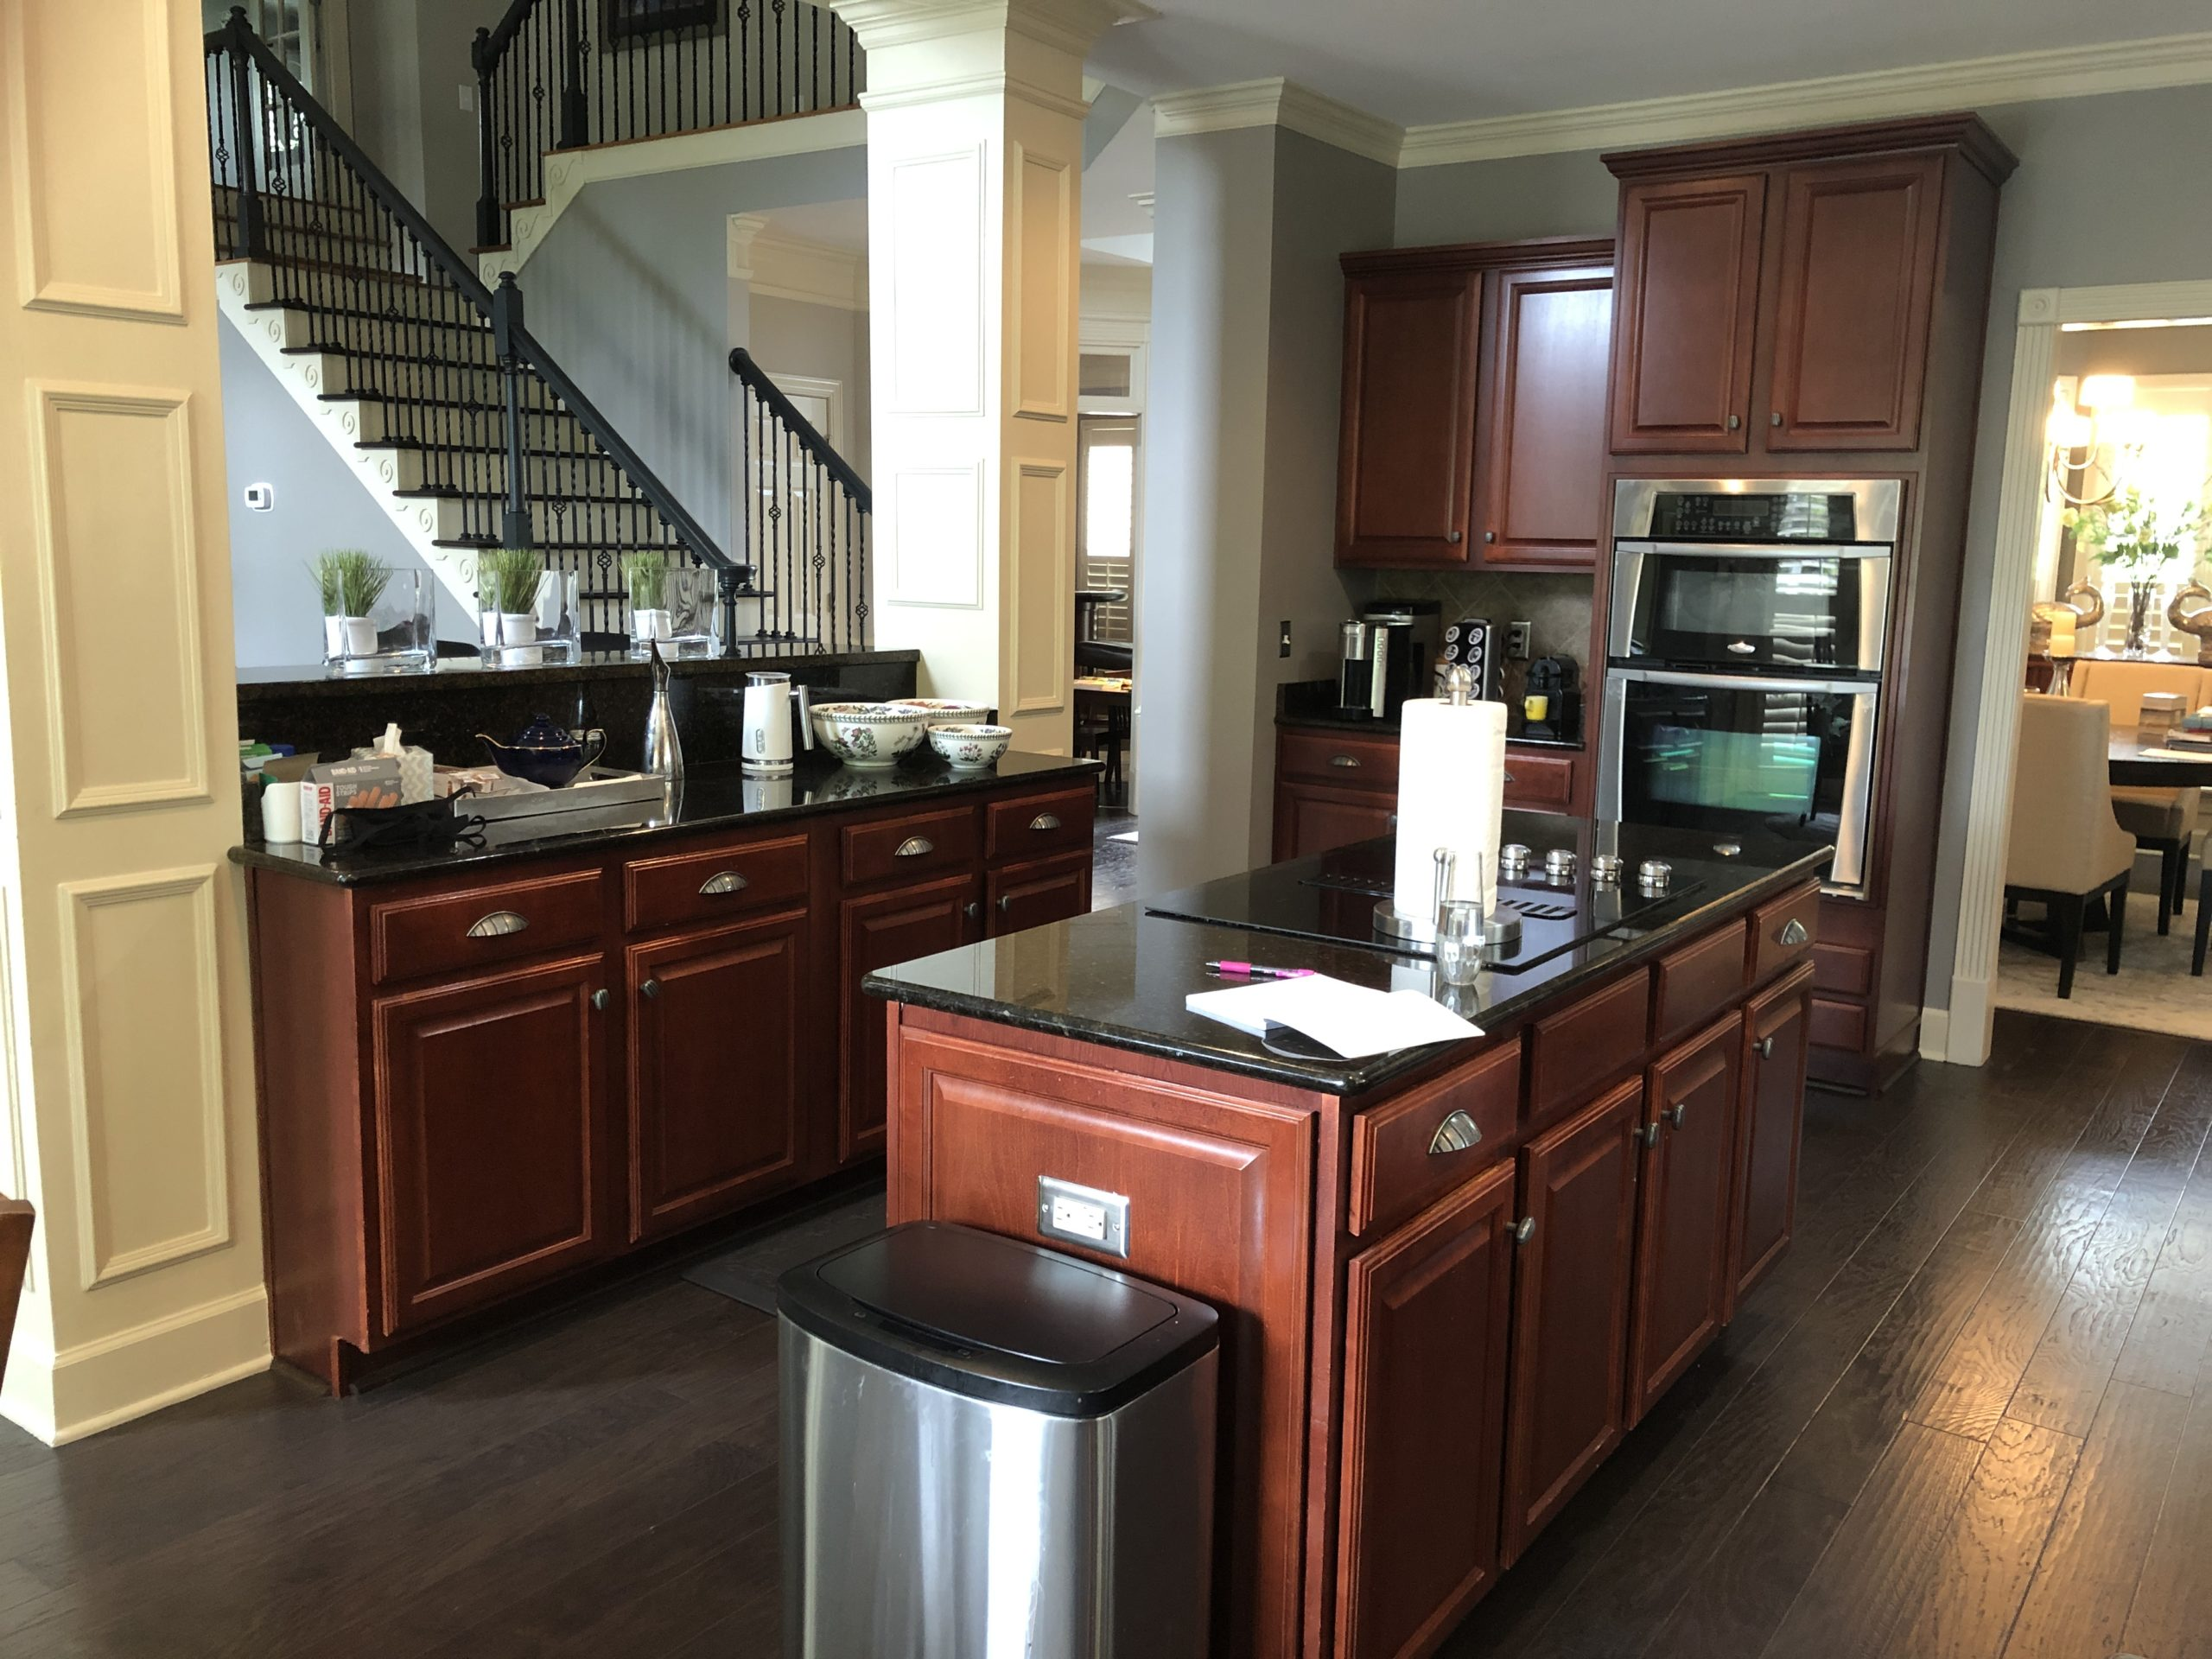 Painted Cherry Cabinets Kitchen, Can Cherry Wood Cabinets Be Painted